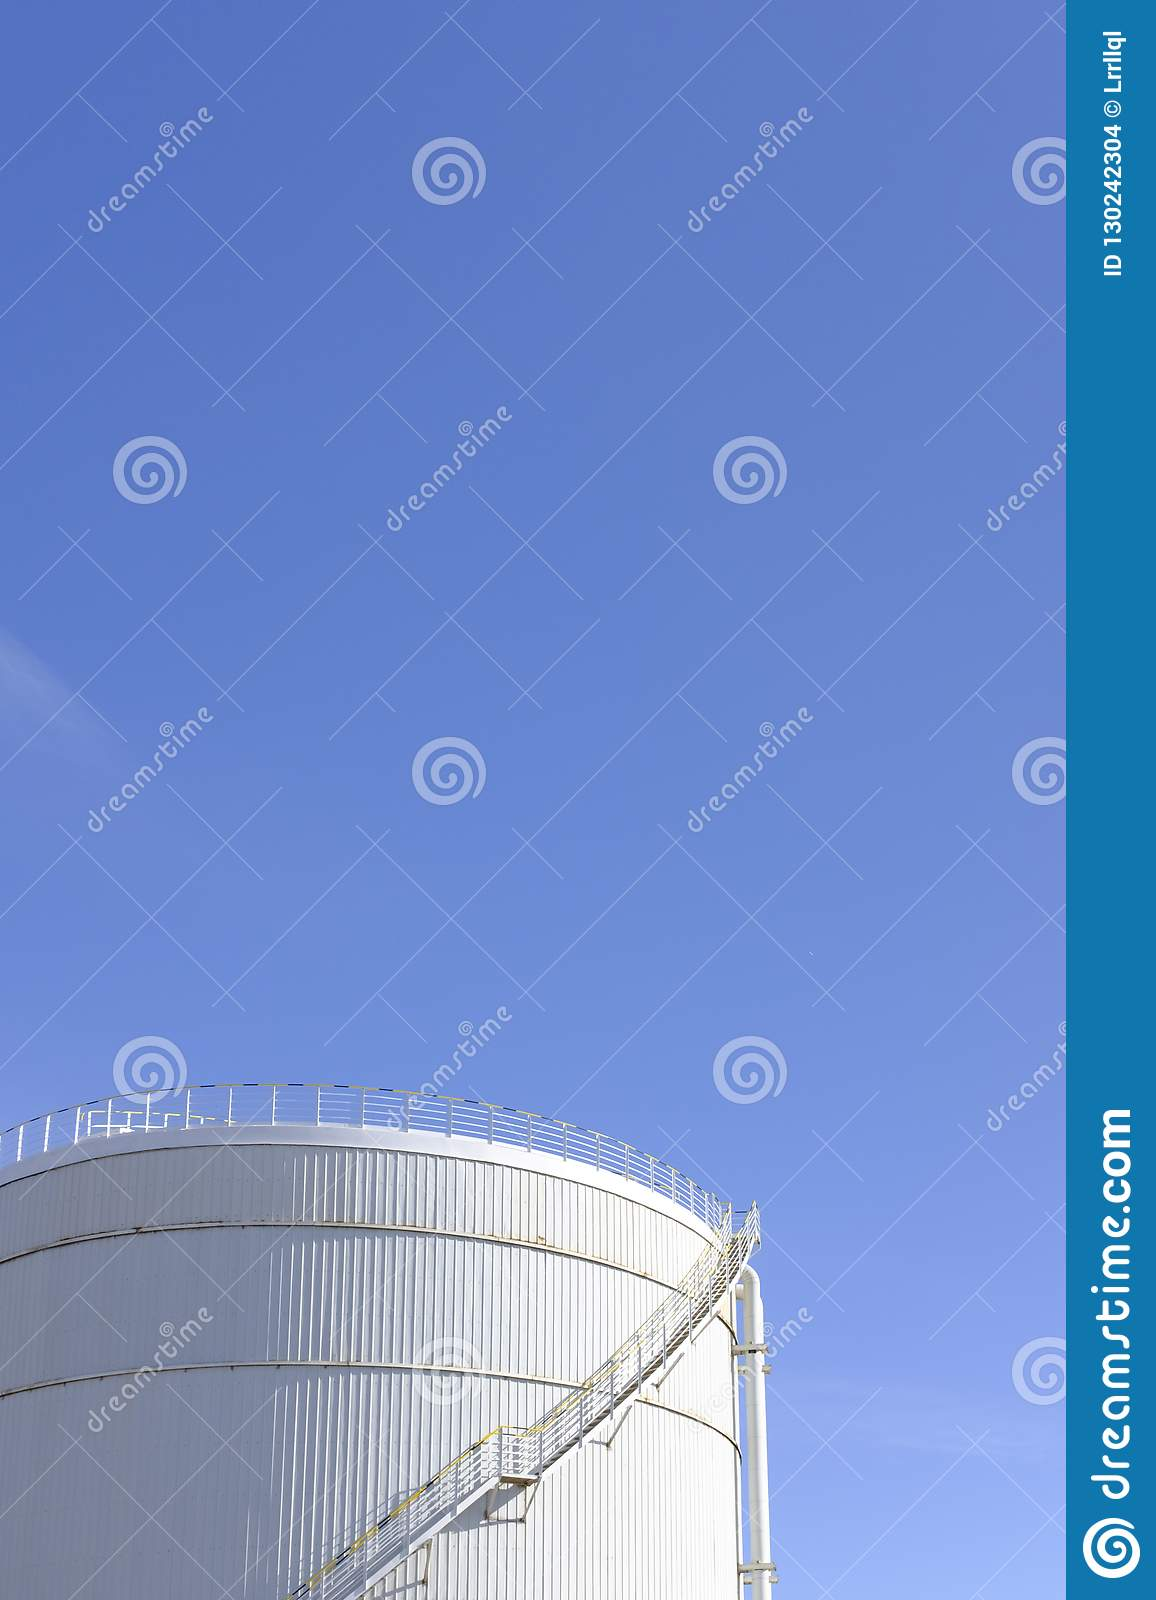 A tank is standing under the blue sky